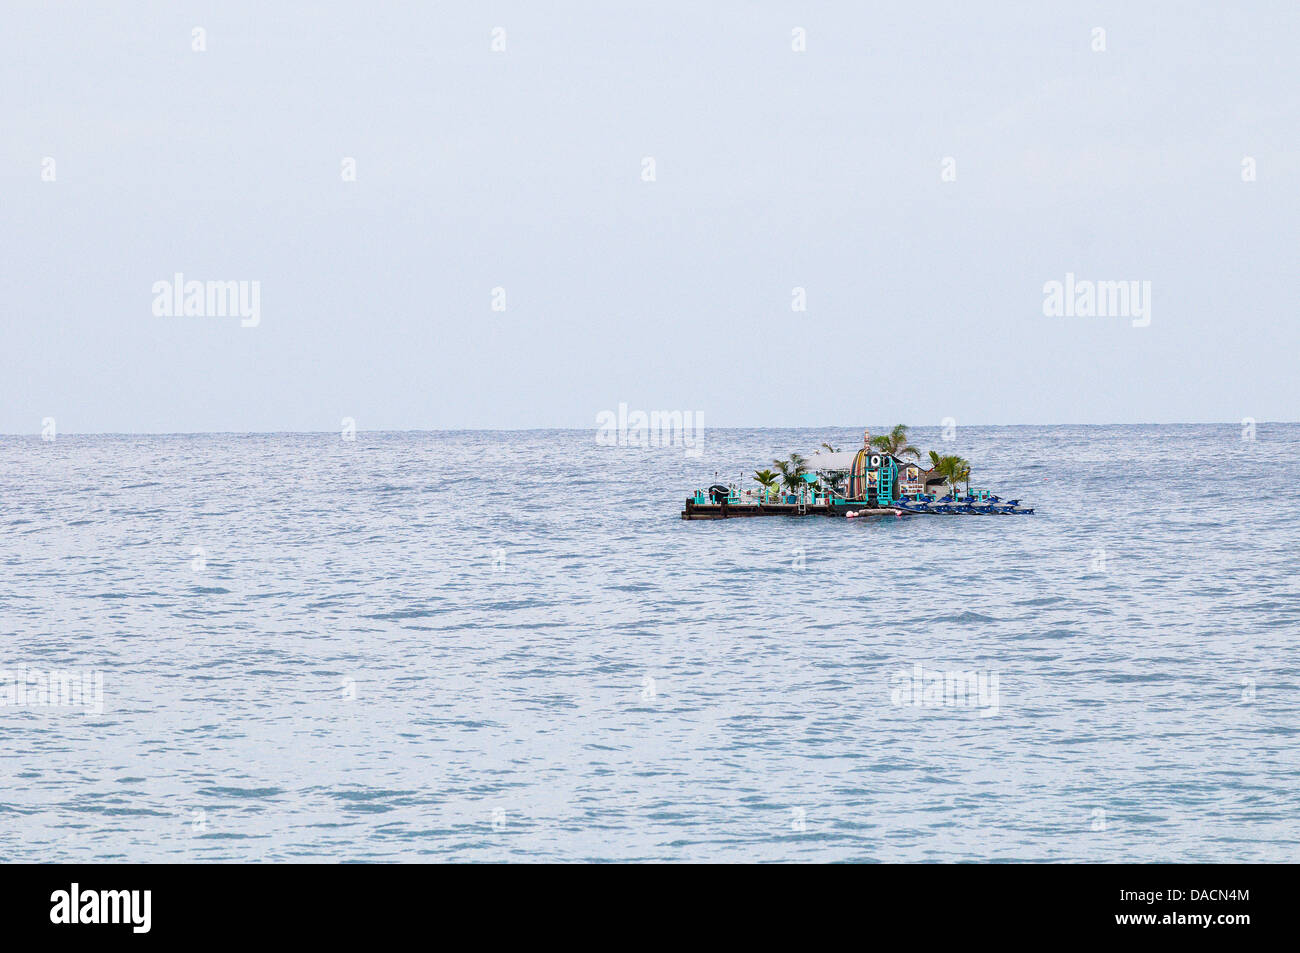 Tourist watersports rafted anchored off the Kailua-Kona shoreline, Big Island, Hawaii - Stock Image